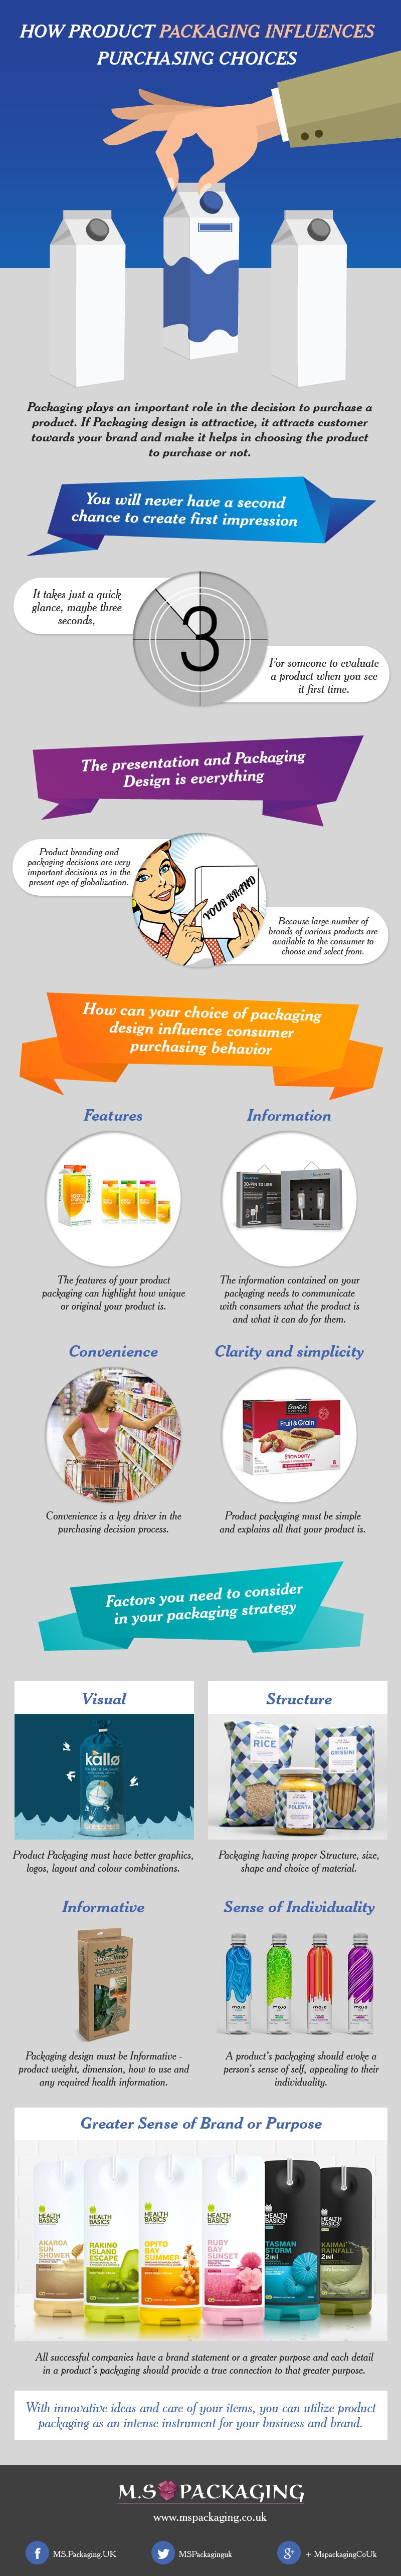 How Product Packaging Influences Purchasing Choices #Infographic